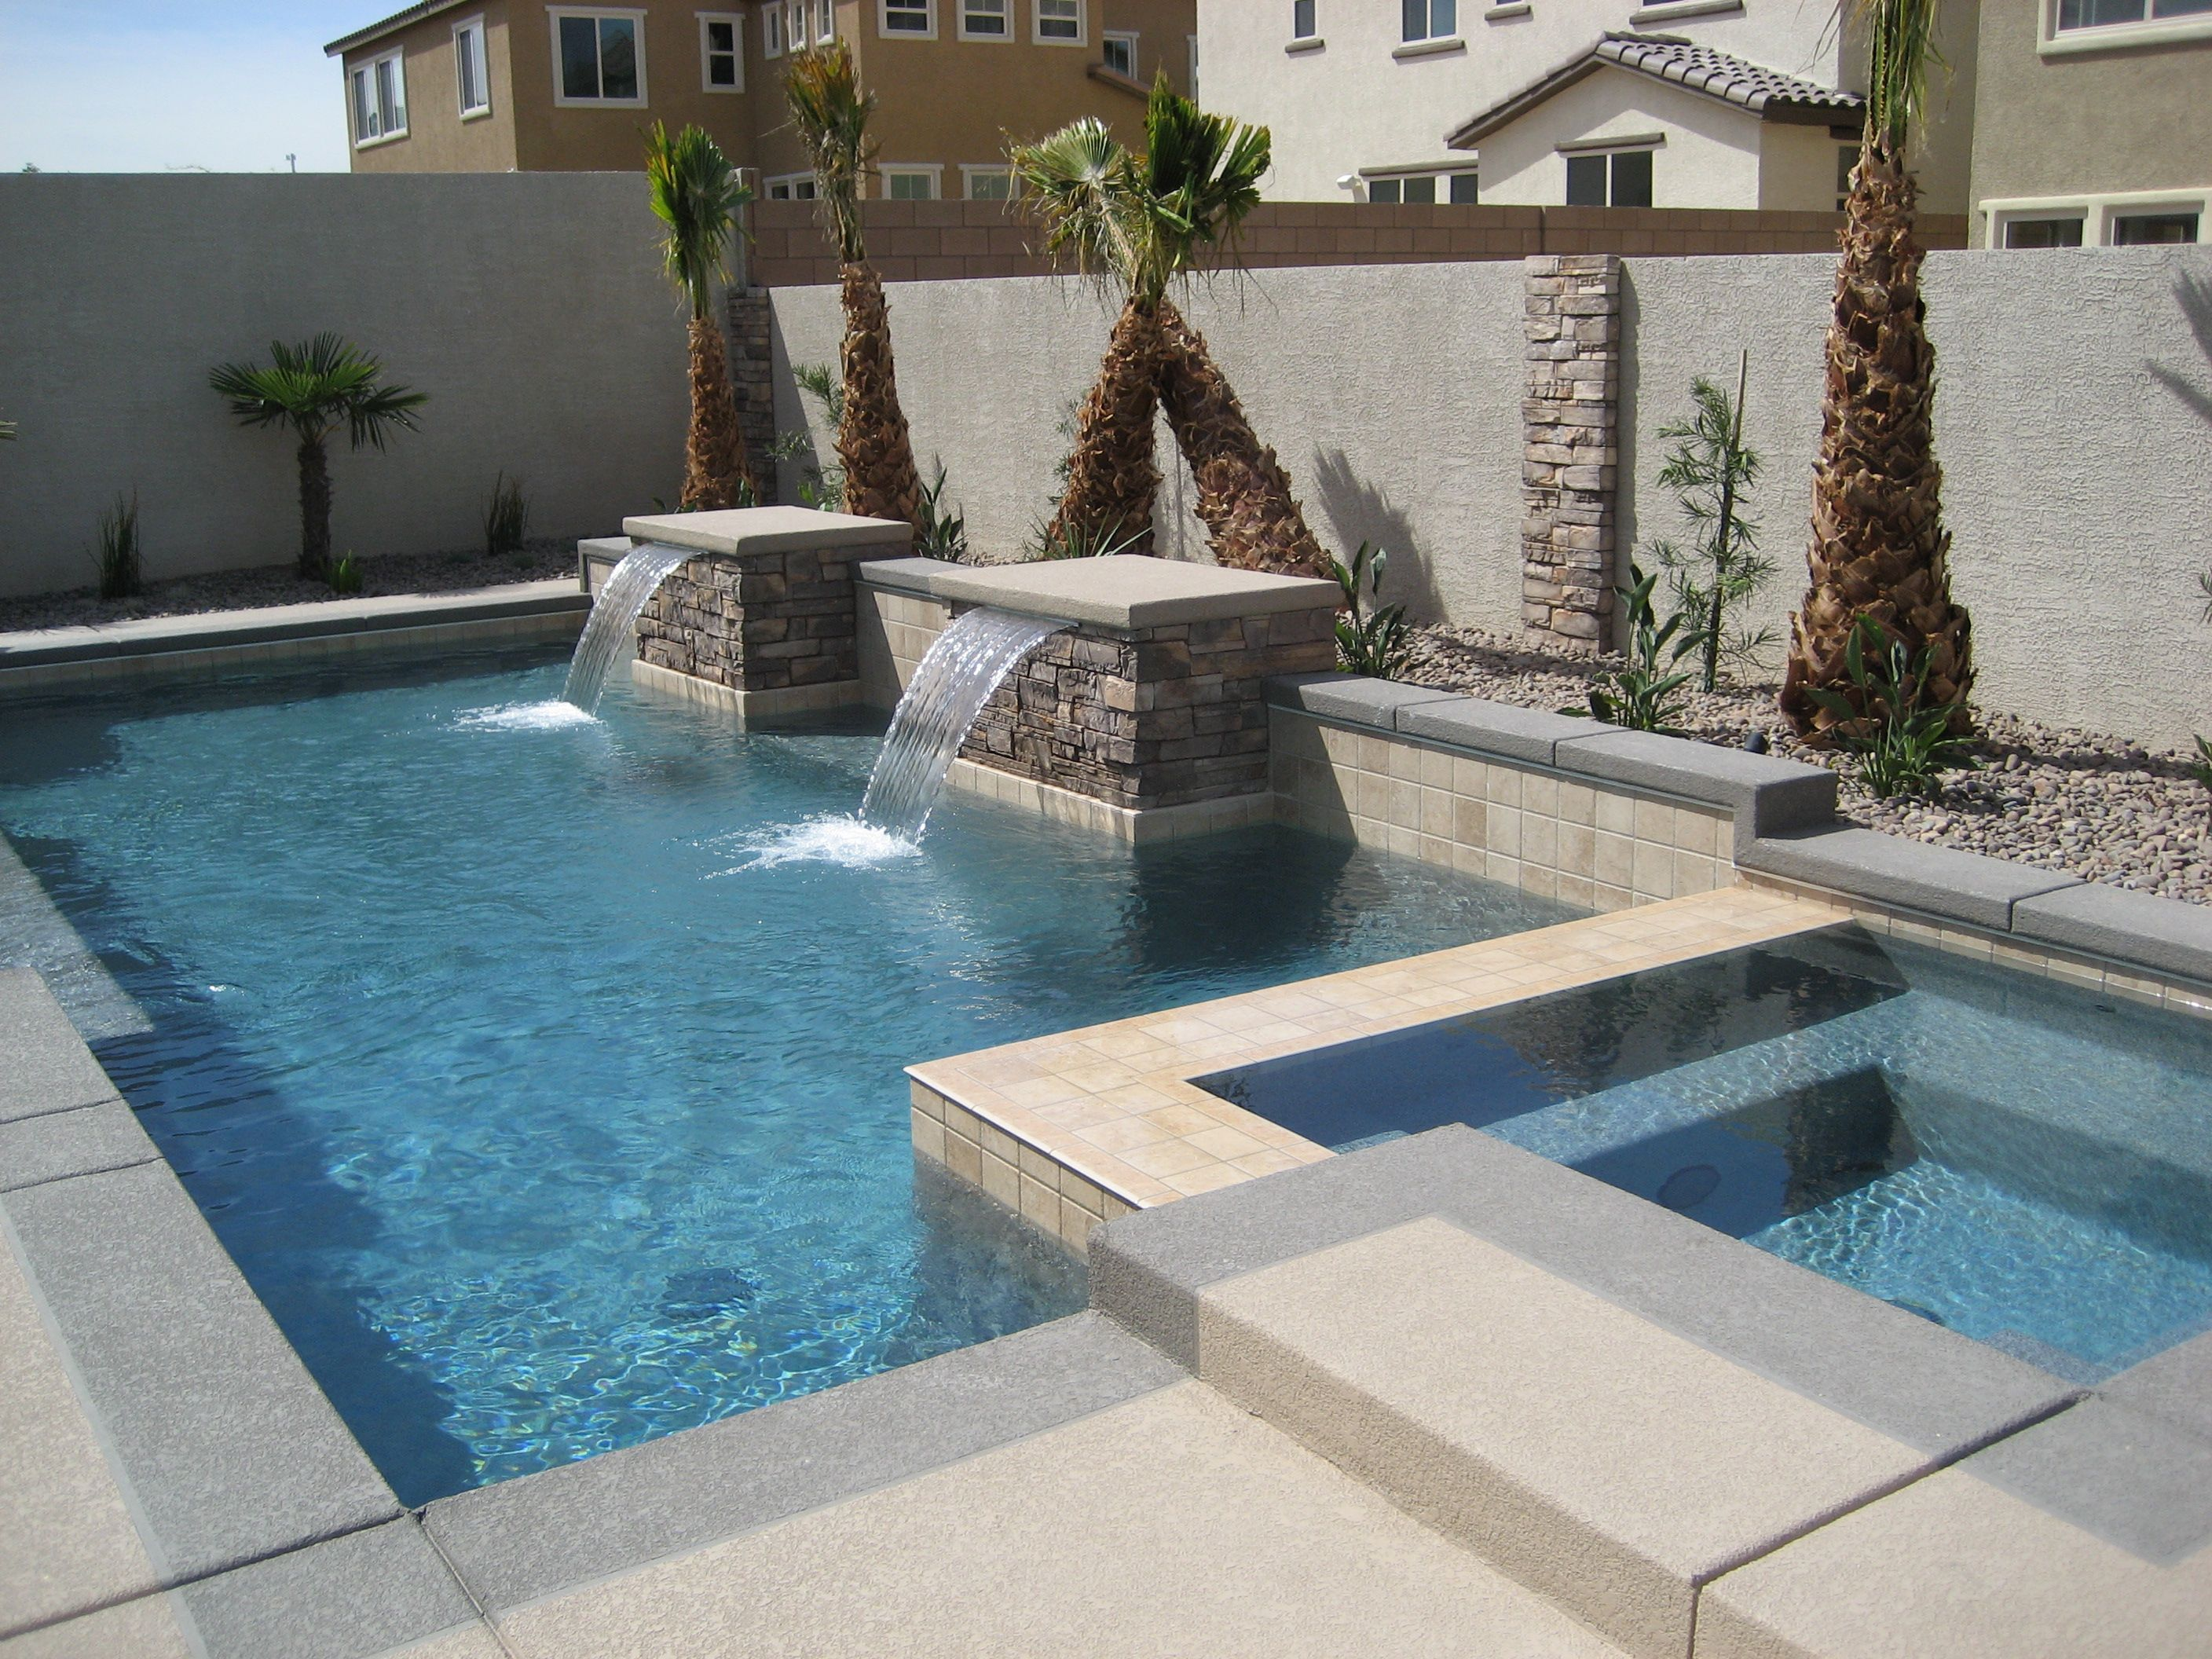 Geometric Design Pool And Spa With Water Features Geometric Pool